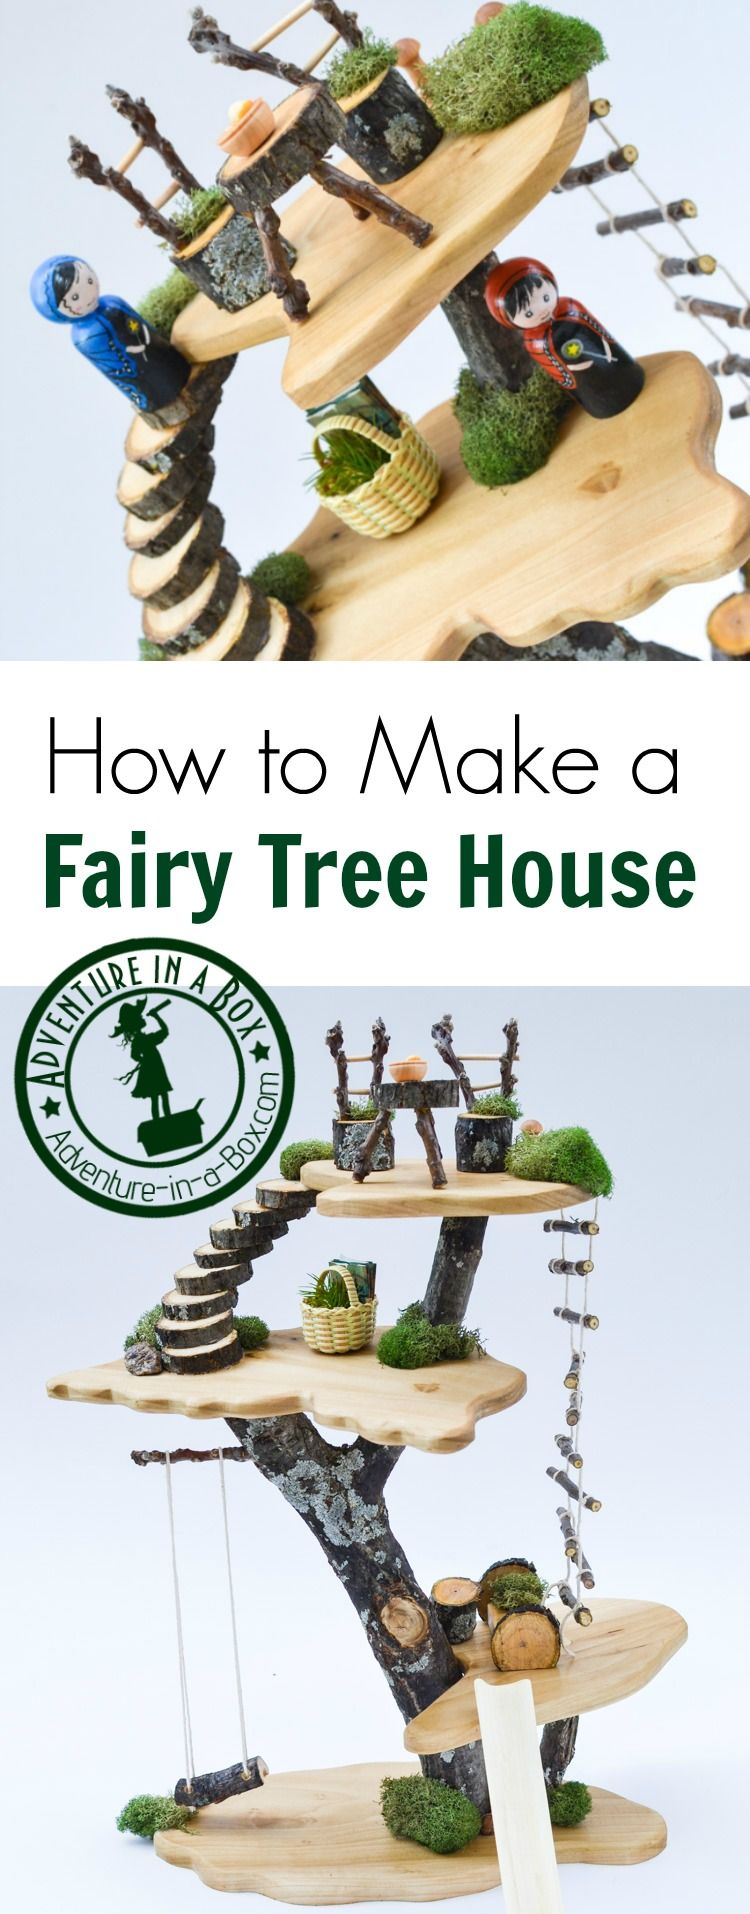 DIY Project: How to Make a Toy Tree House #toydoll